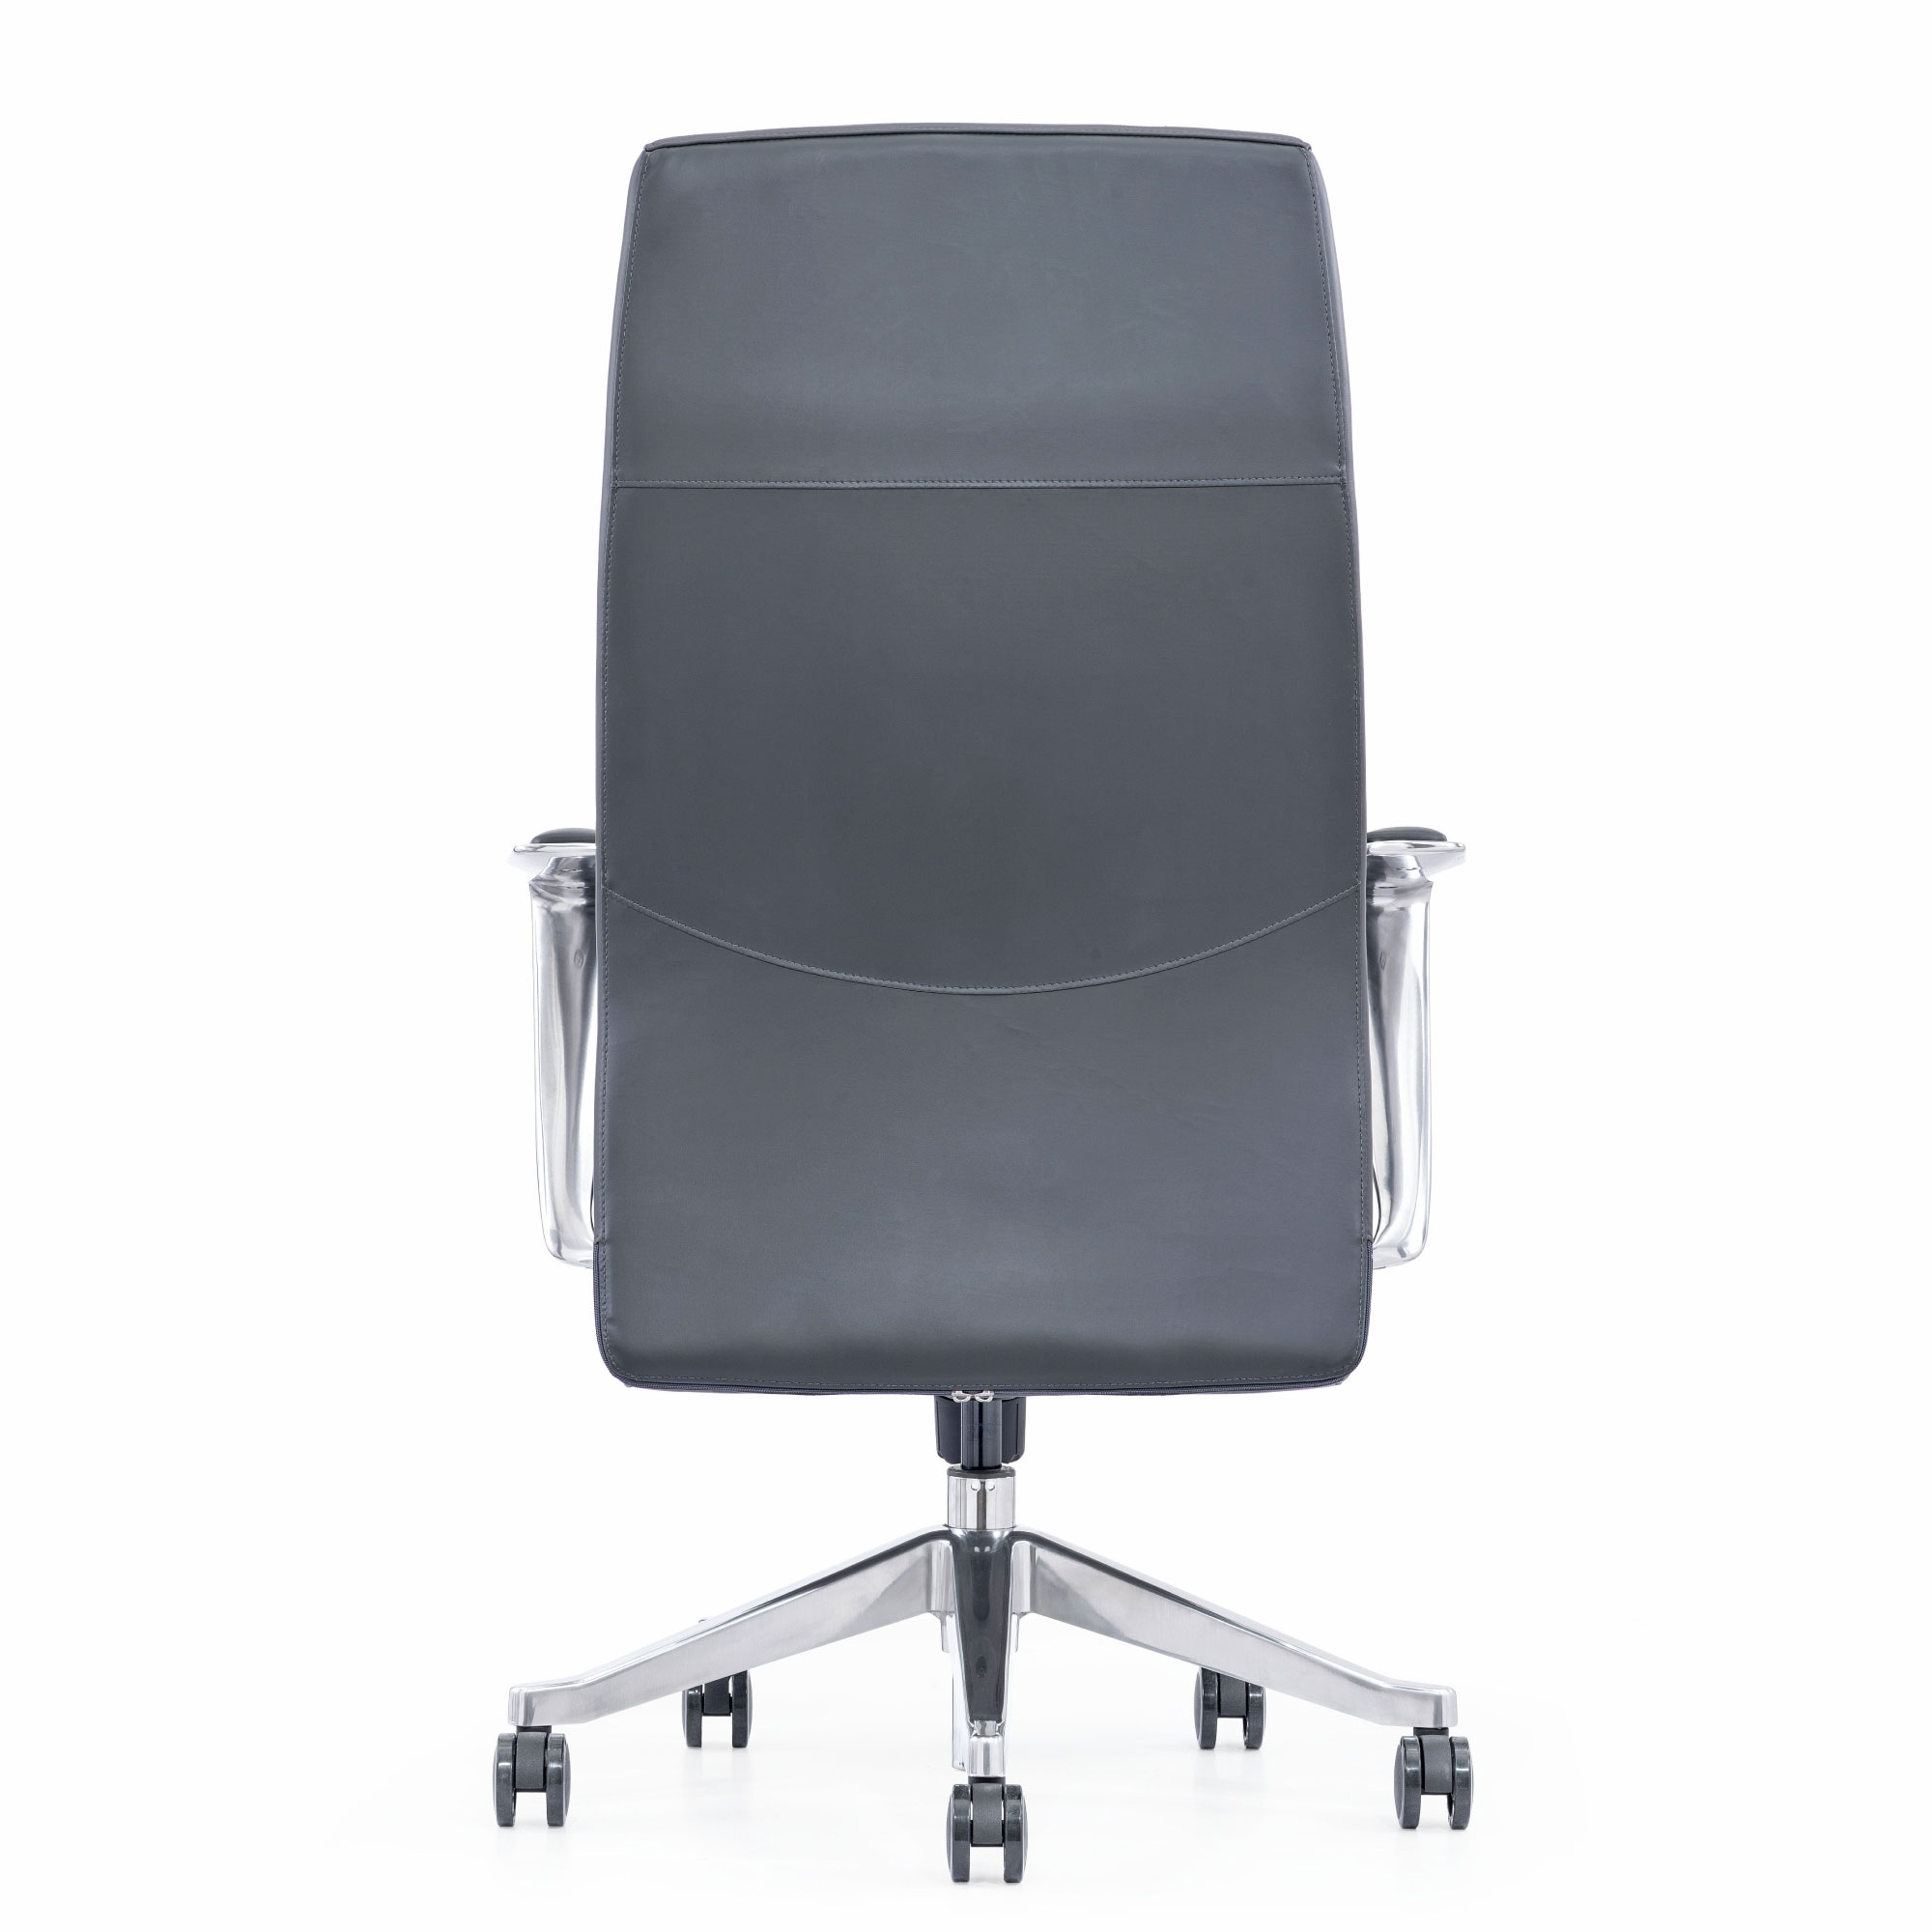 Gray Leather Executive Chair, Back View